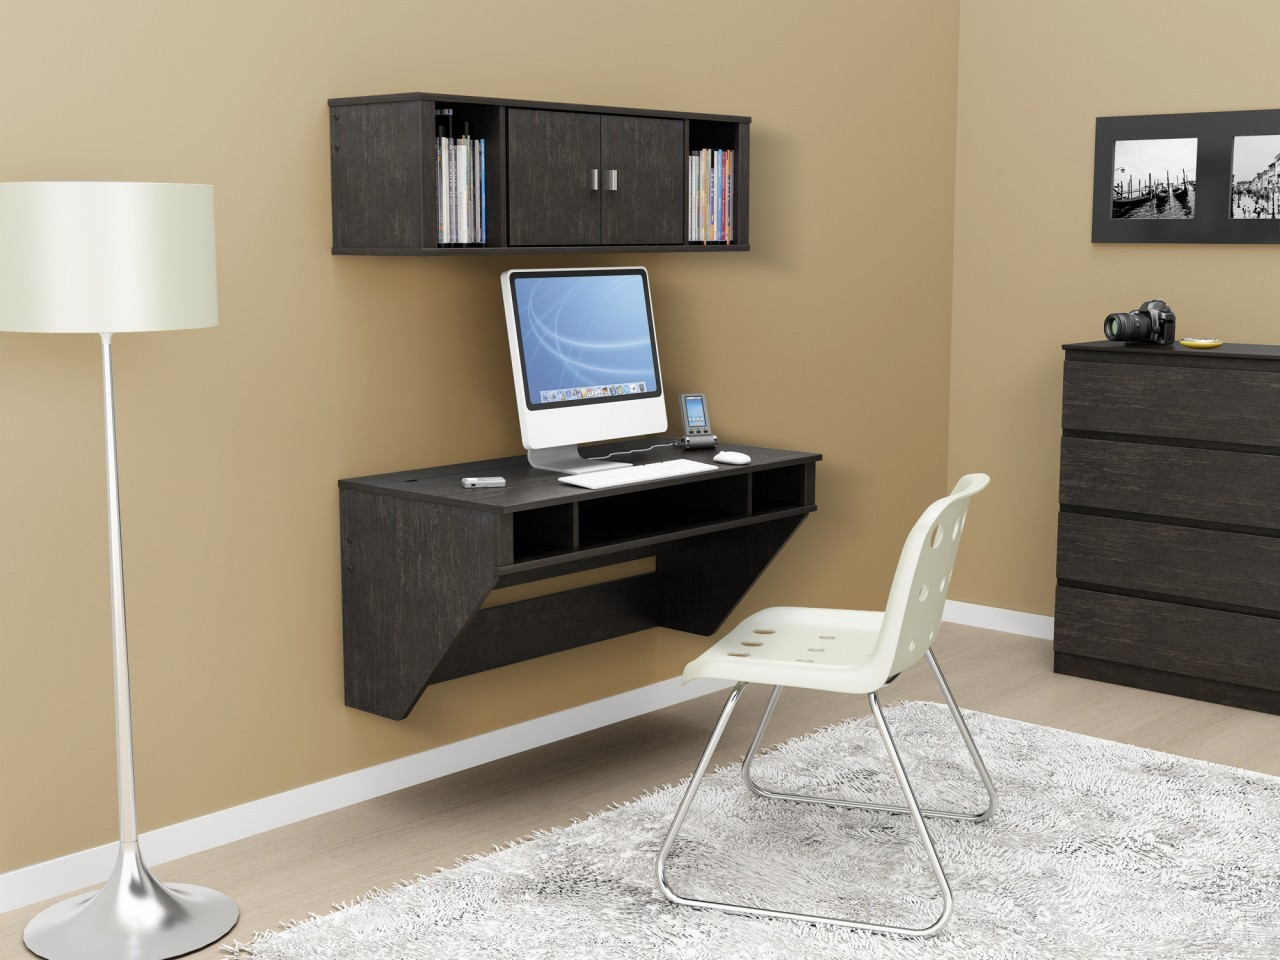 fascinating-furniture-ikea-wooden-computer-desks-for-small-spaces-home-office-with-black-wooden-cabinet-4-drawer-above-wood-floor-and-black-wooden-floating-computer-desk-be-equipped-storage-shelves-al